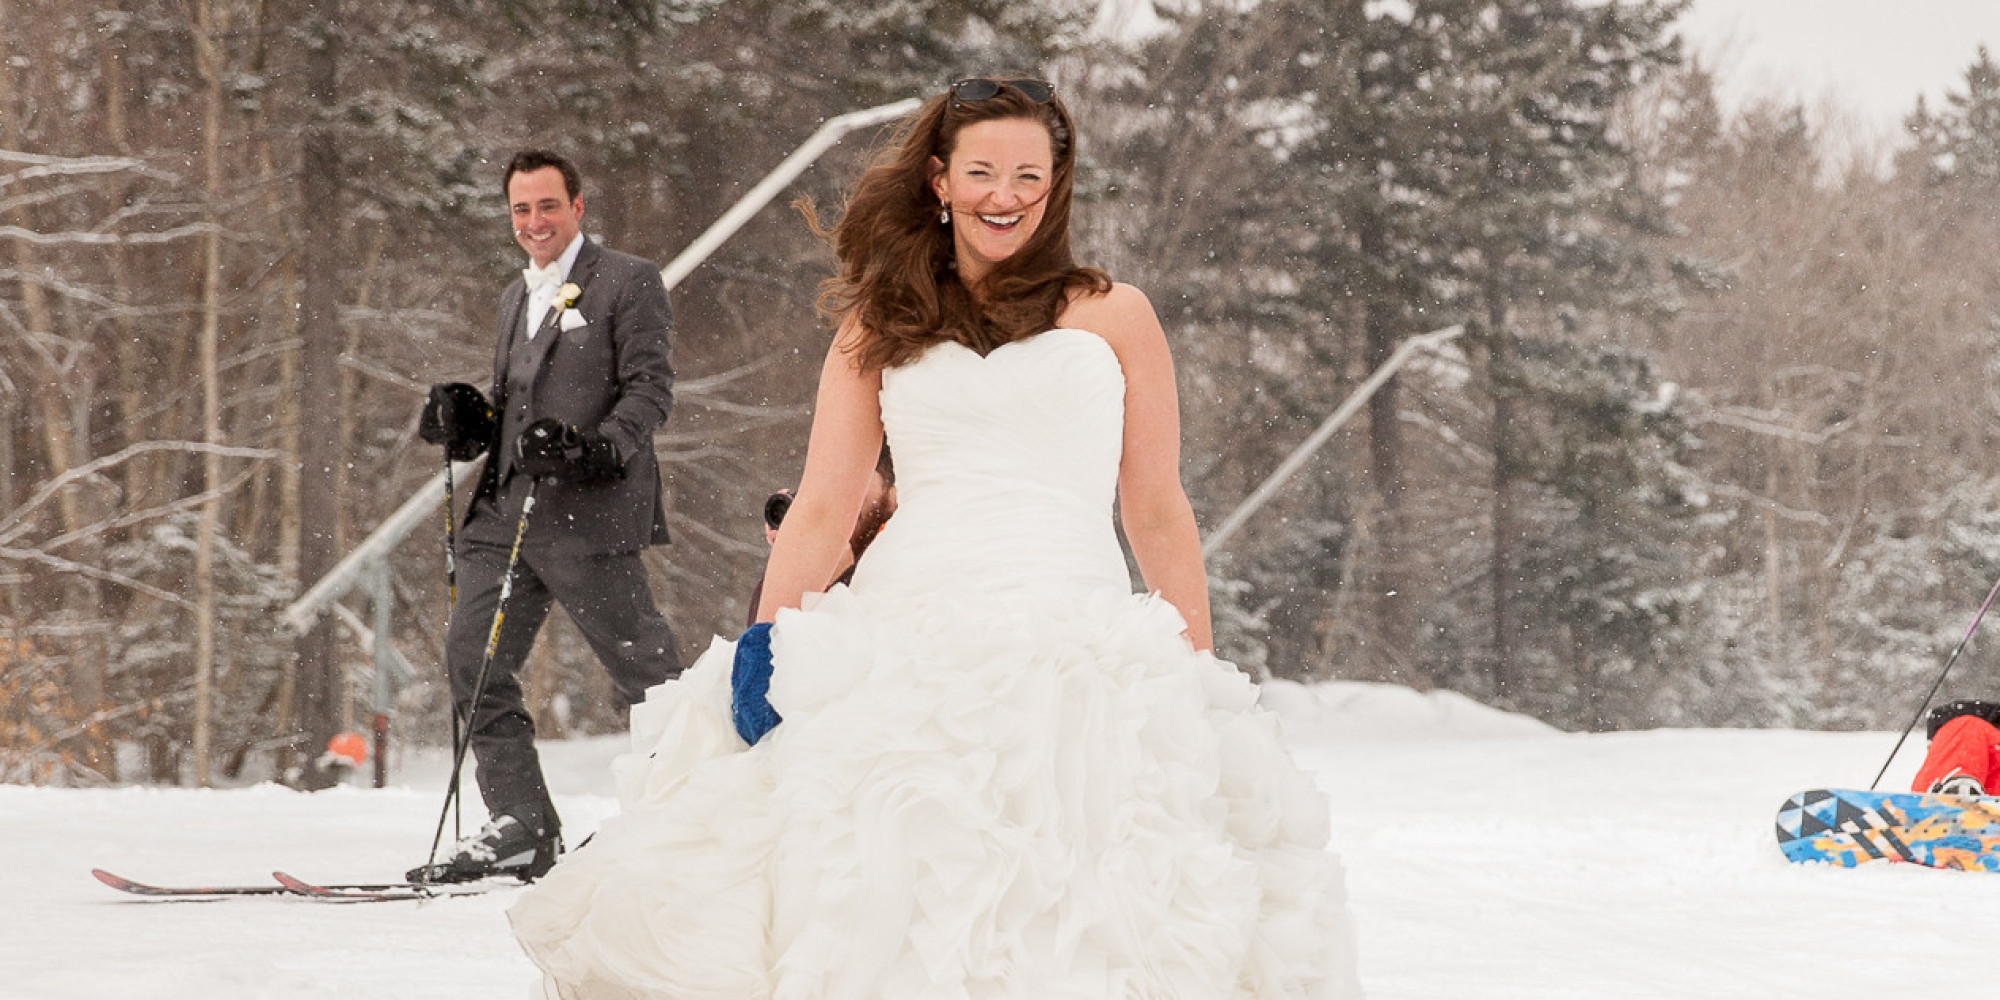 Bromley mountain wedding